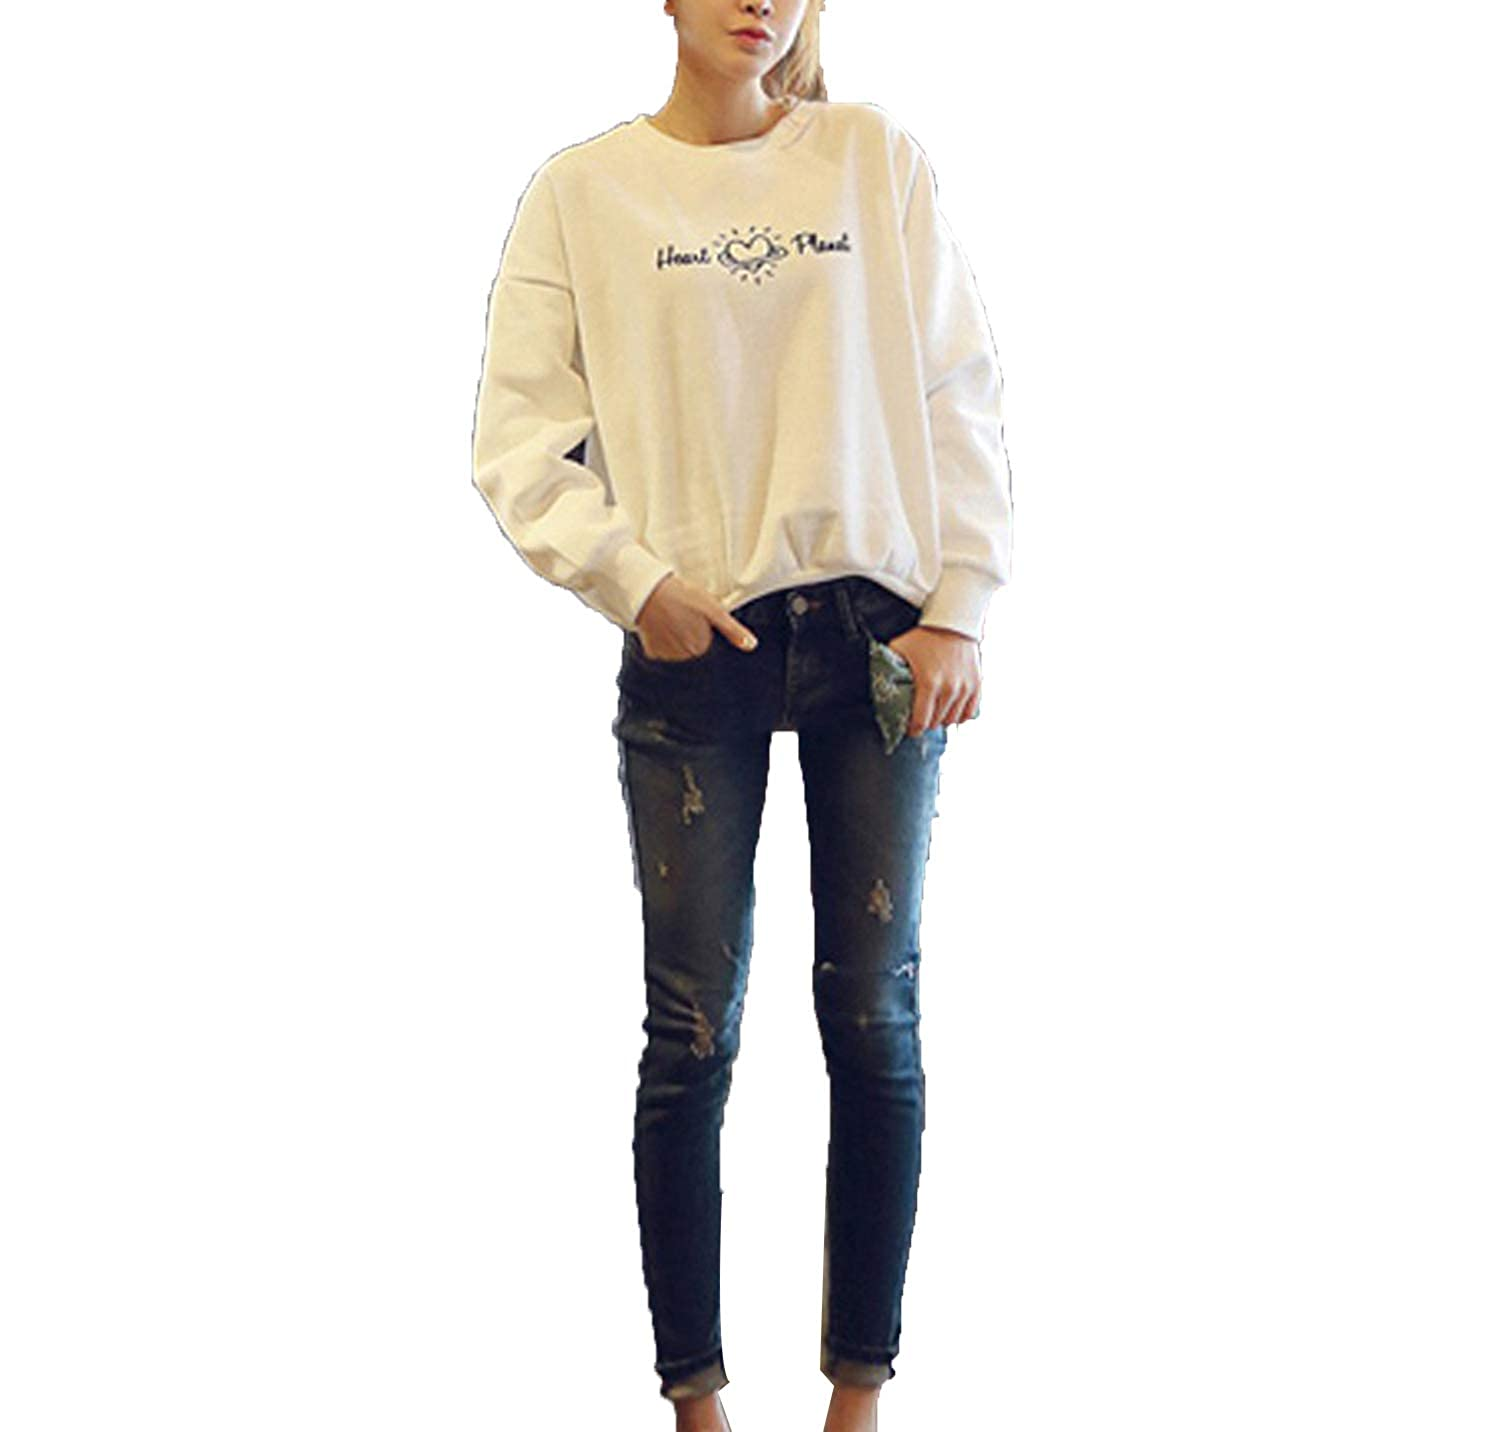 Amazon.com: MERRYDAY Women Large Size Sudaderas Mujer Kpop Long Sleeve Hoodie: Clothing